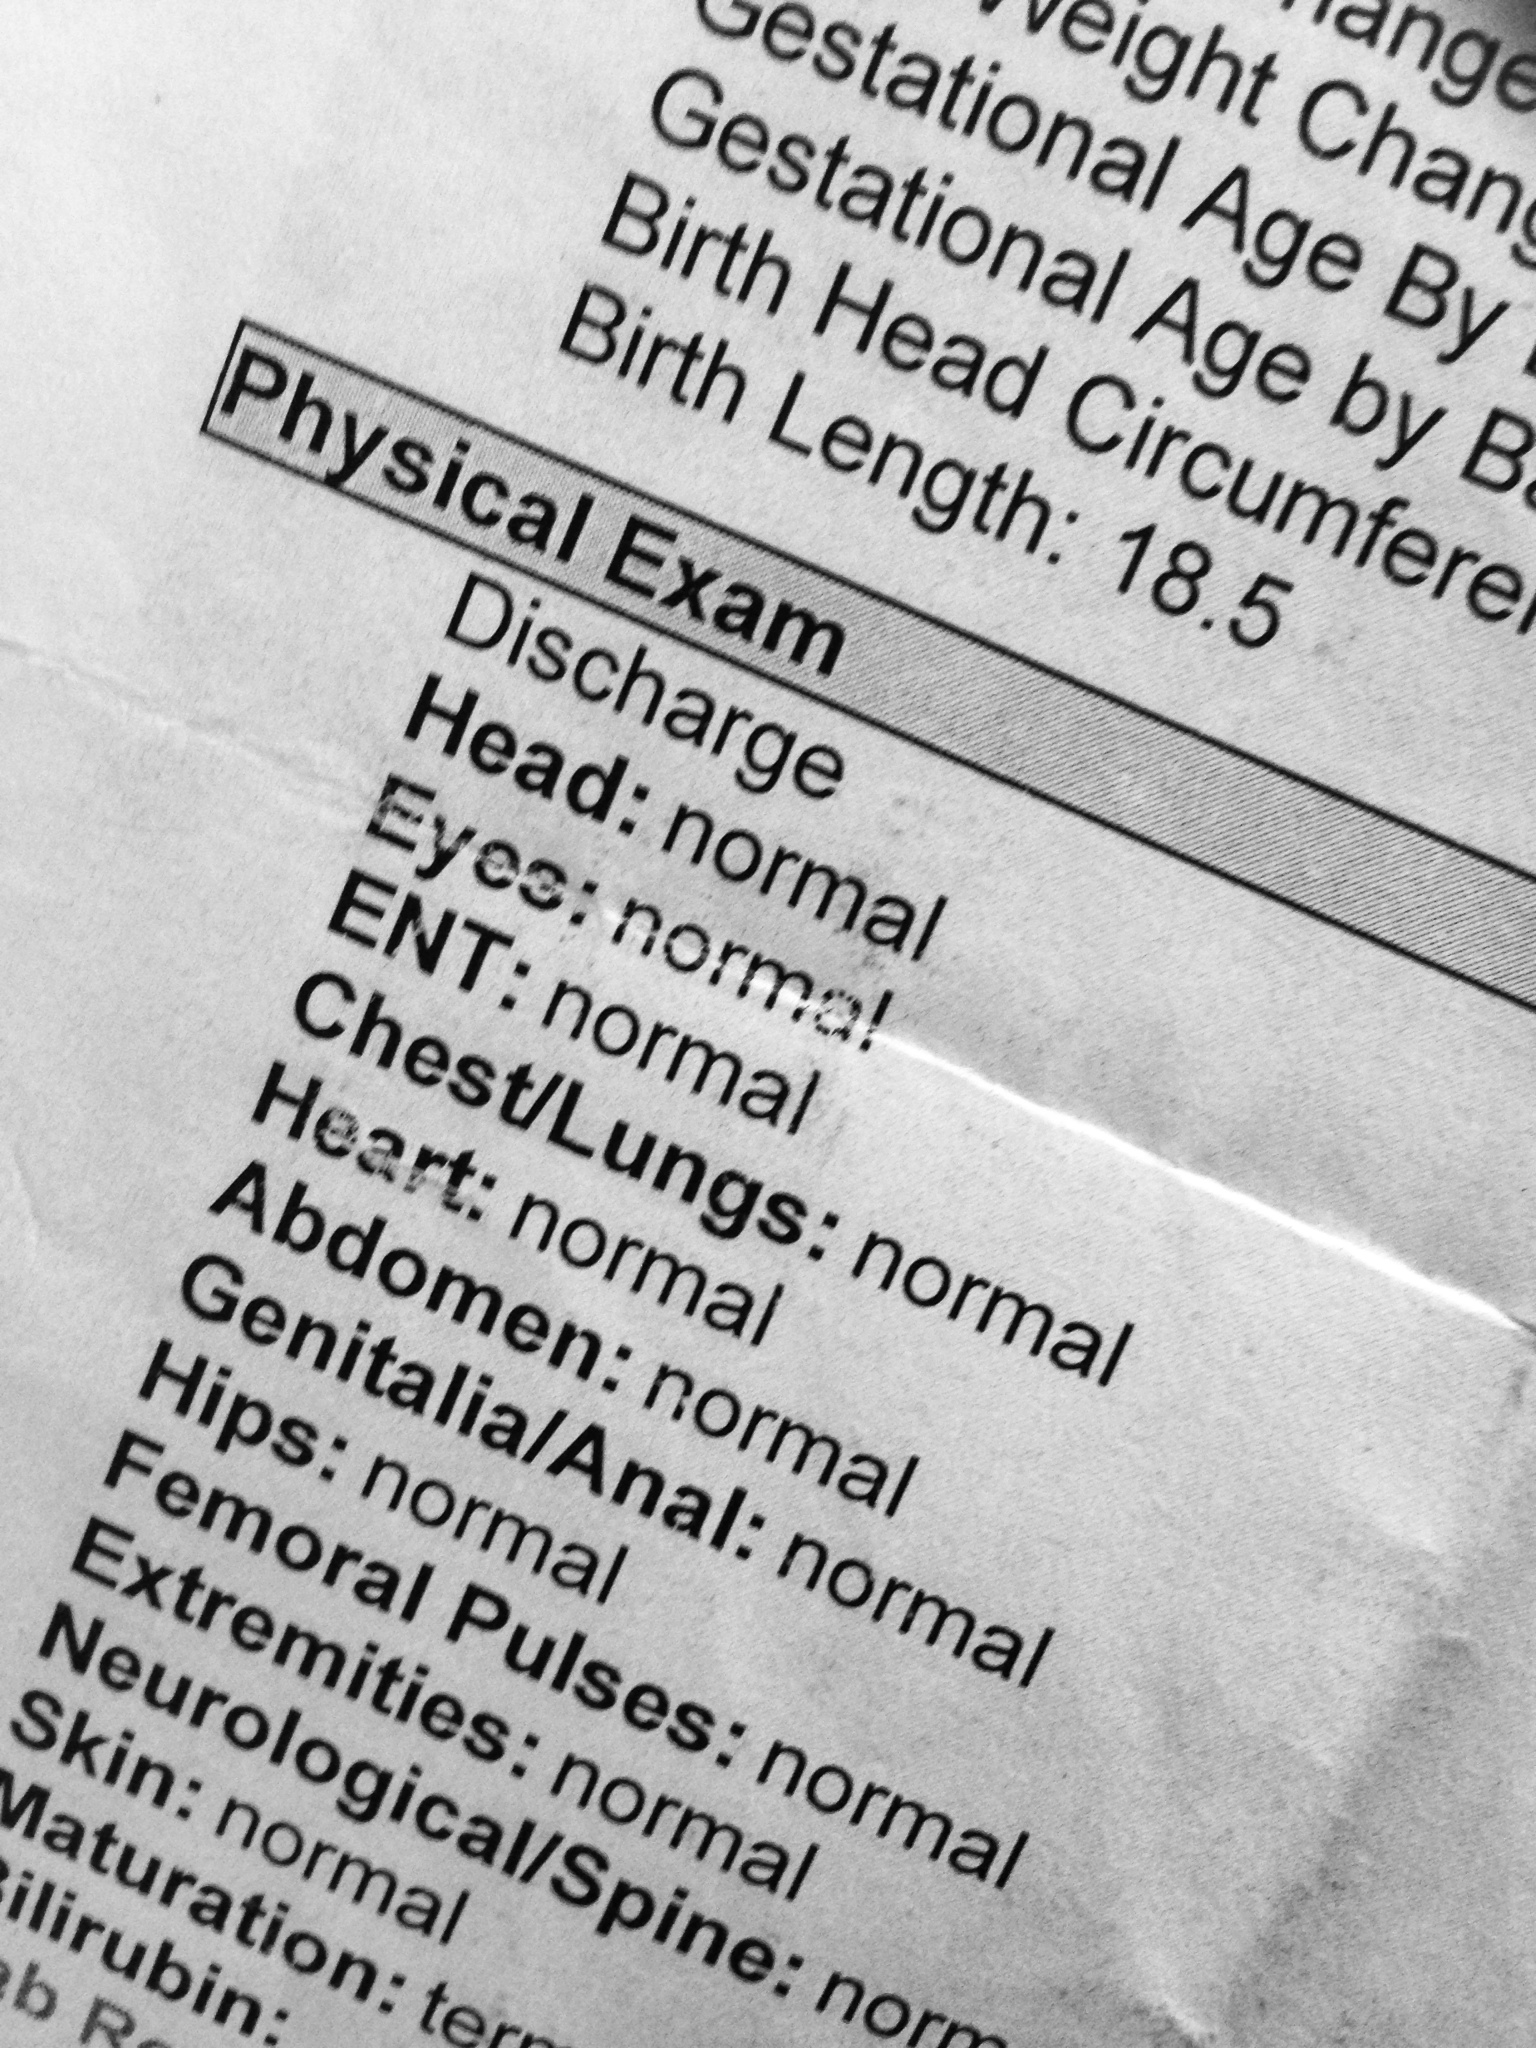 Physical examination and b discharge summary